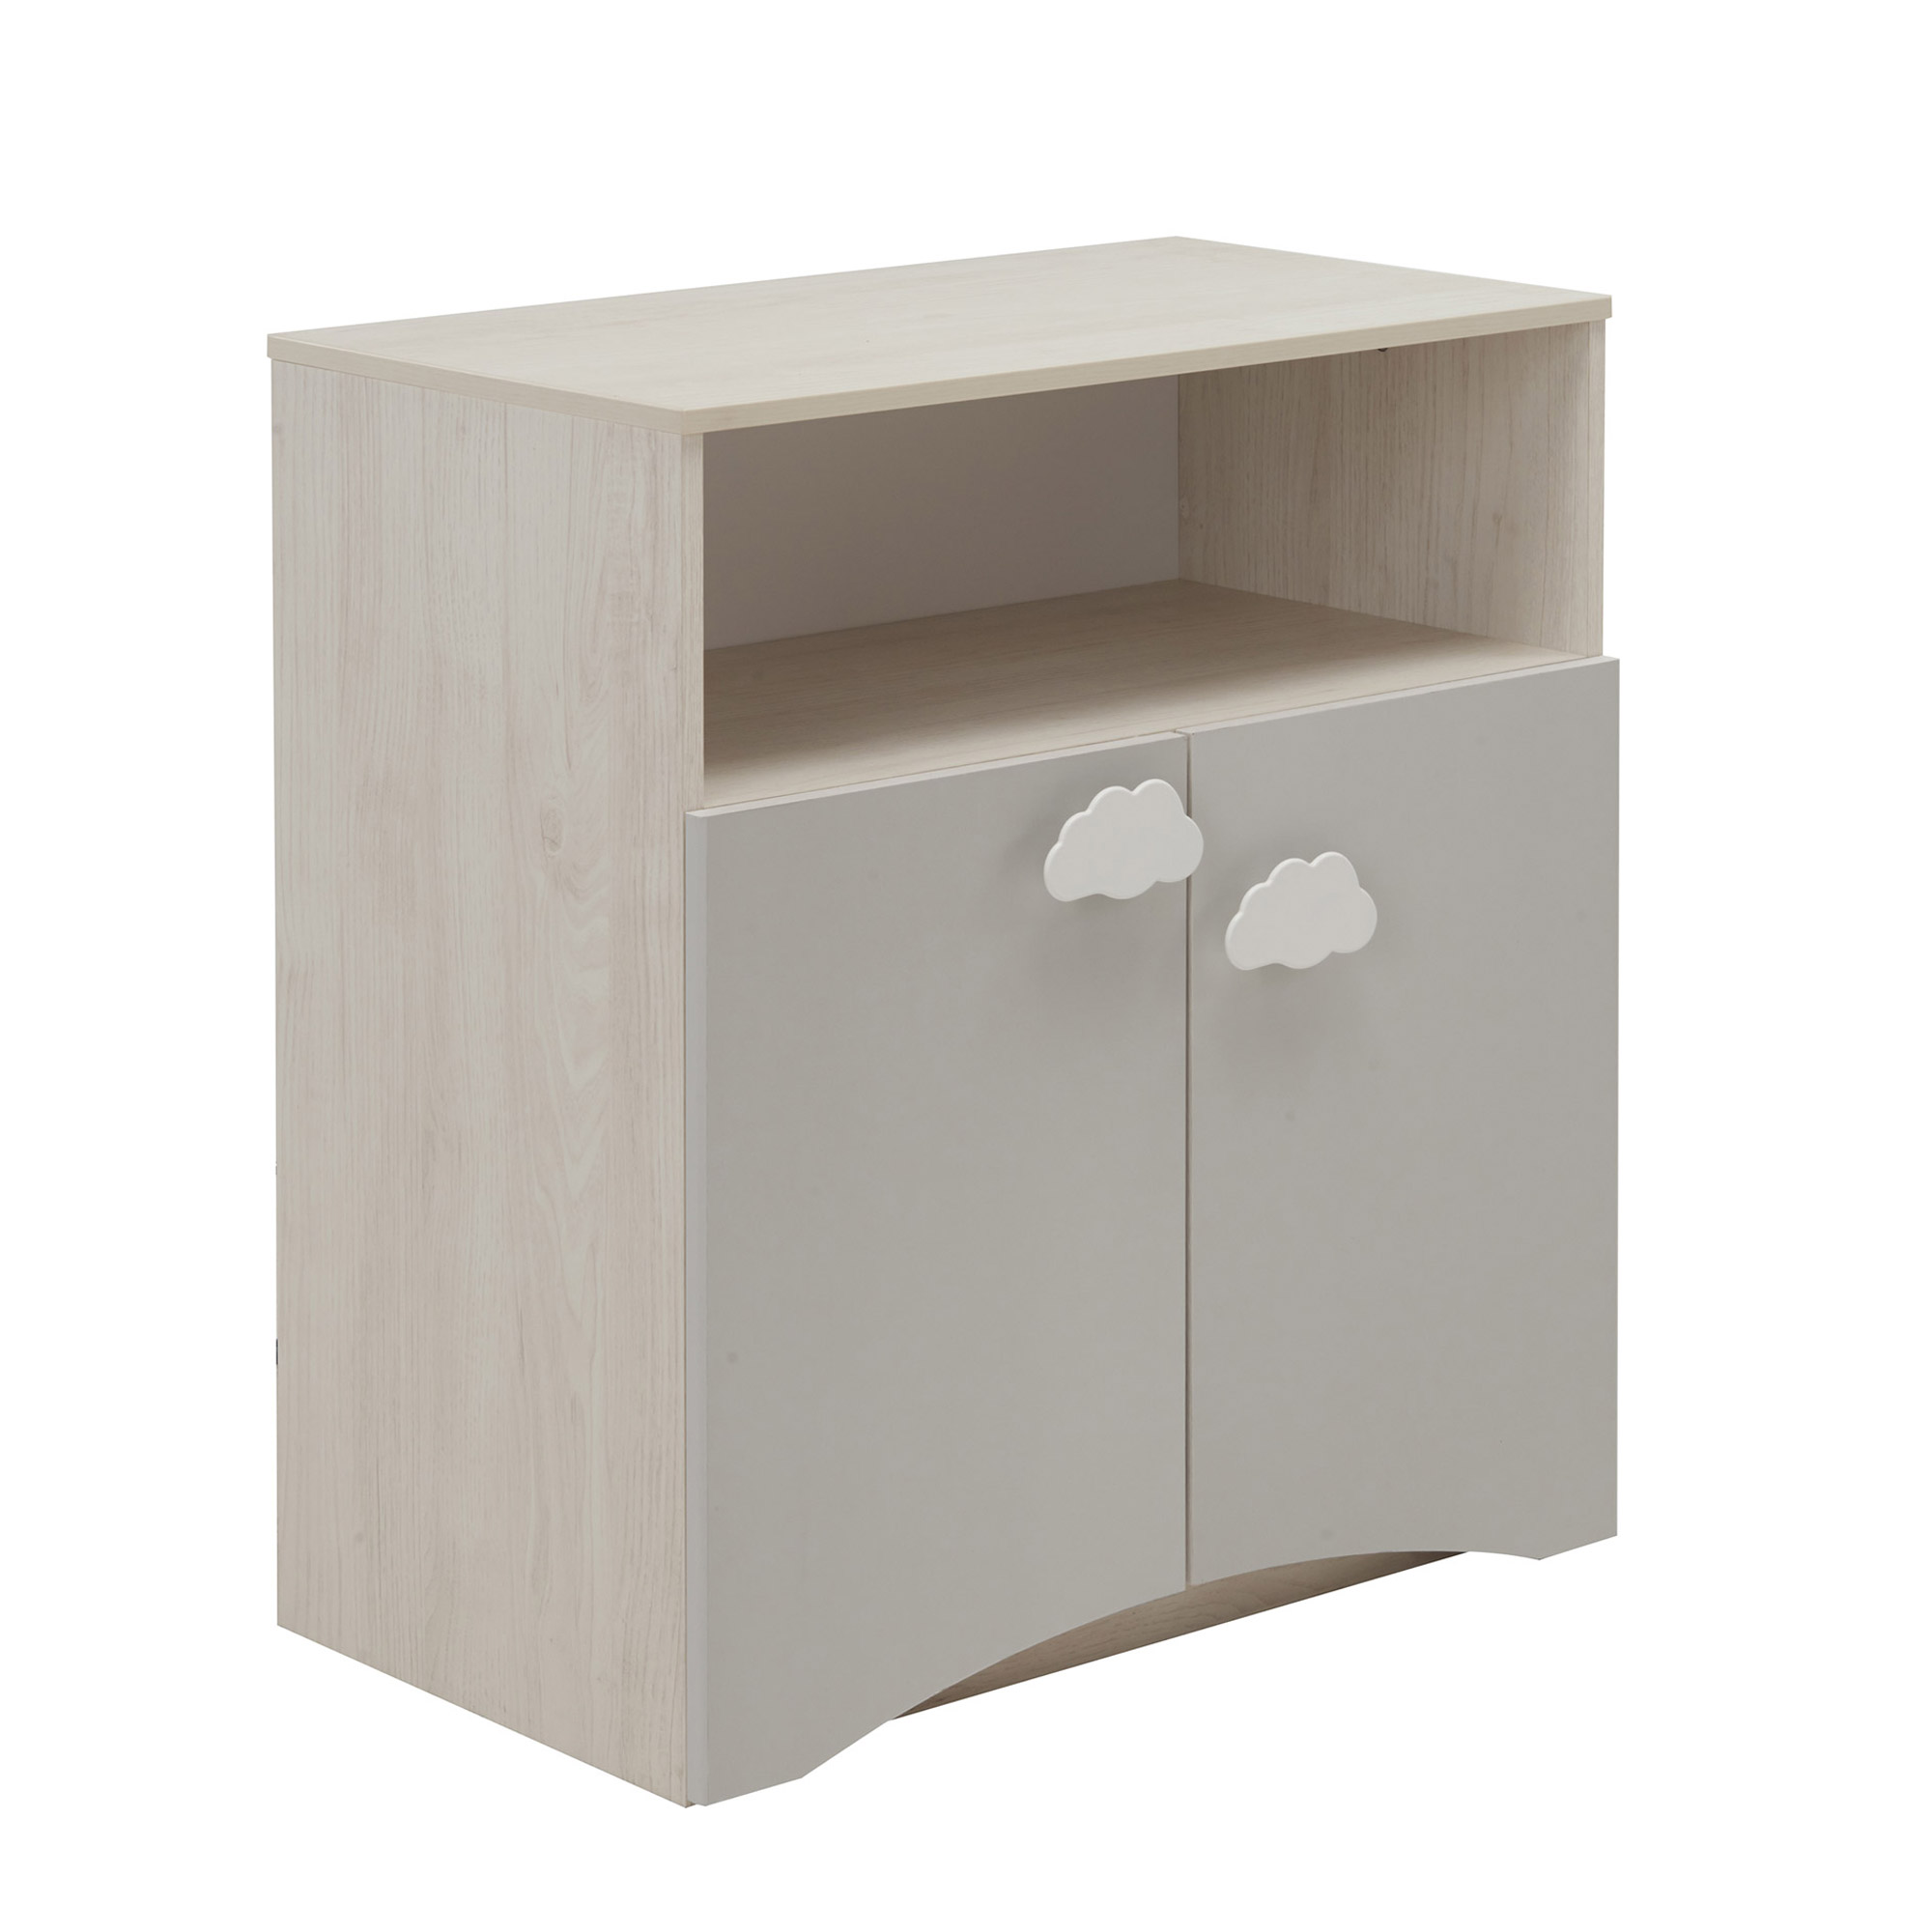 Gabin commode 2 portes